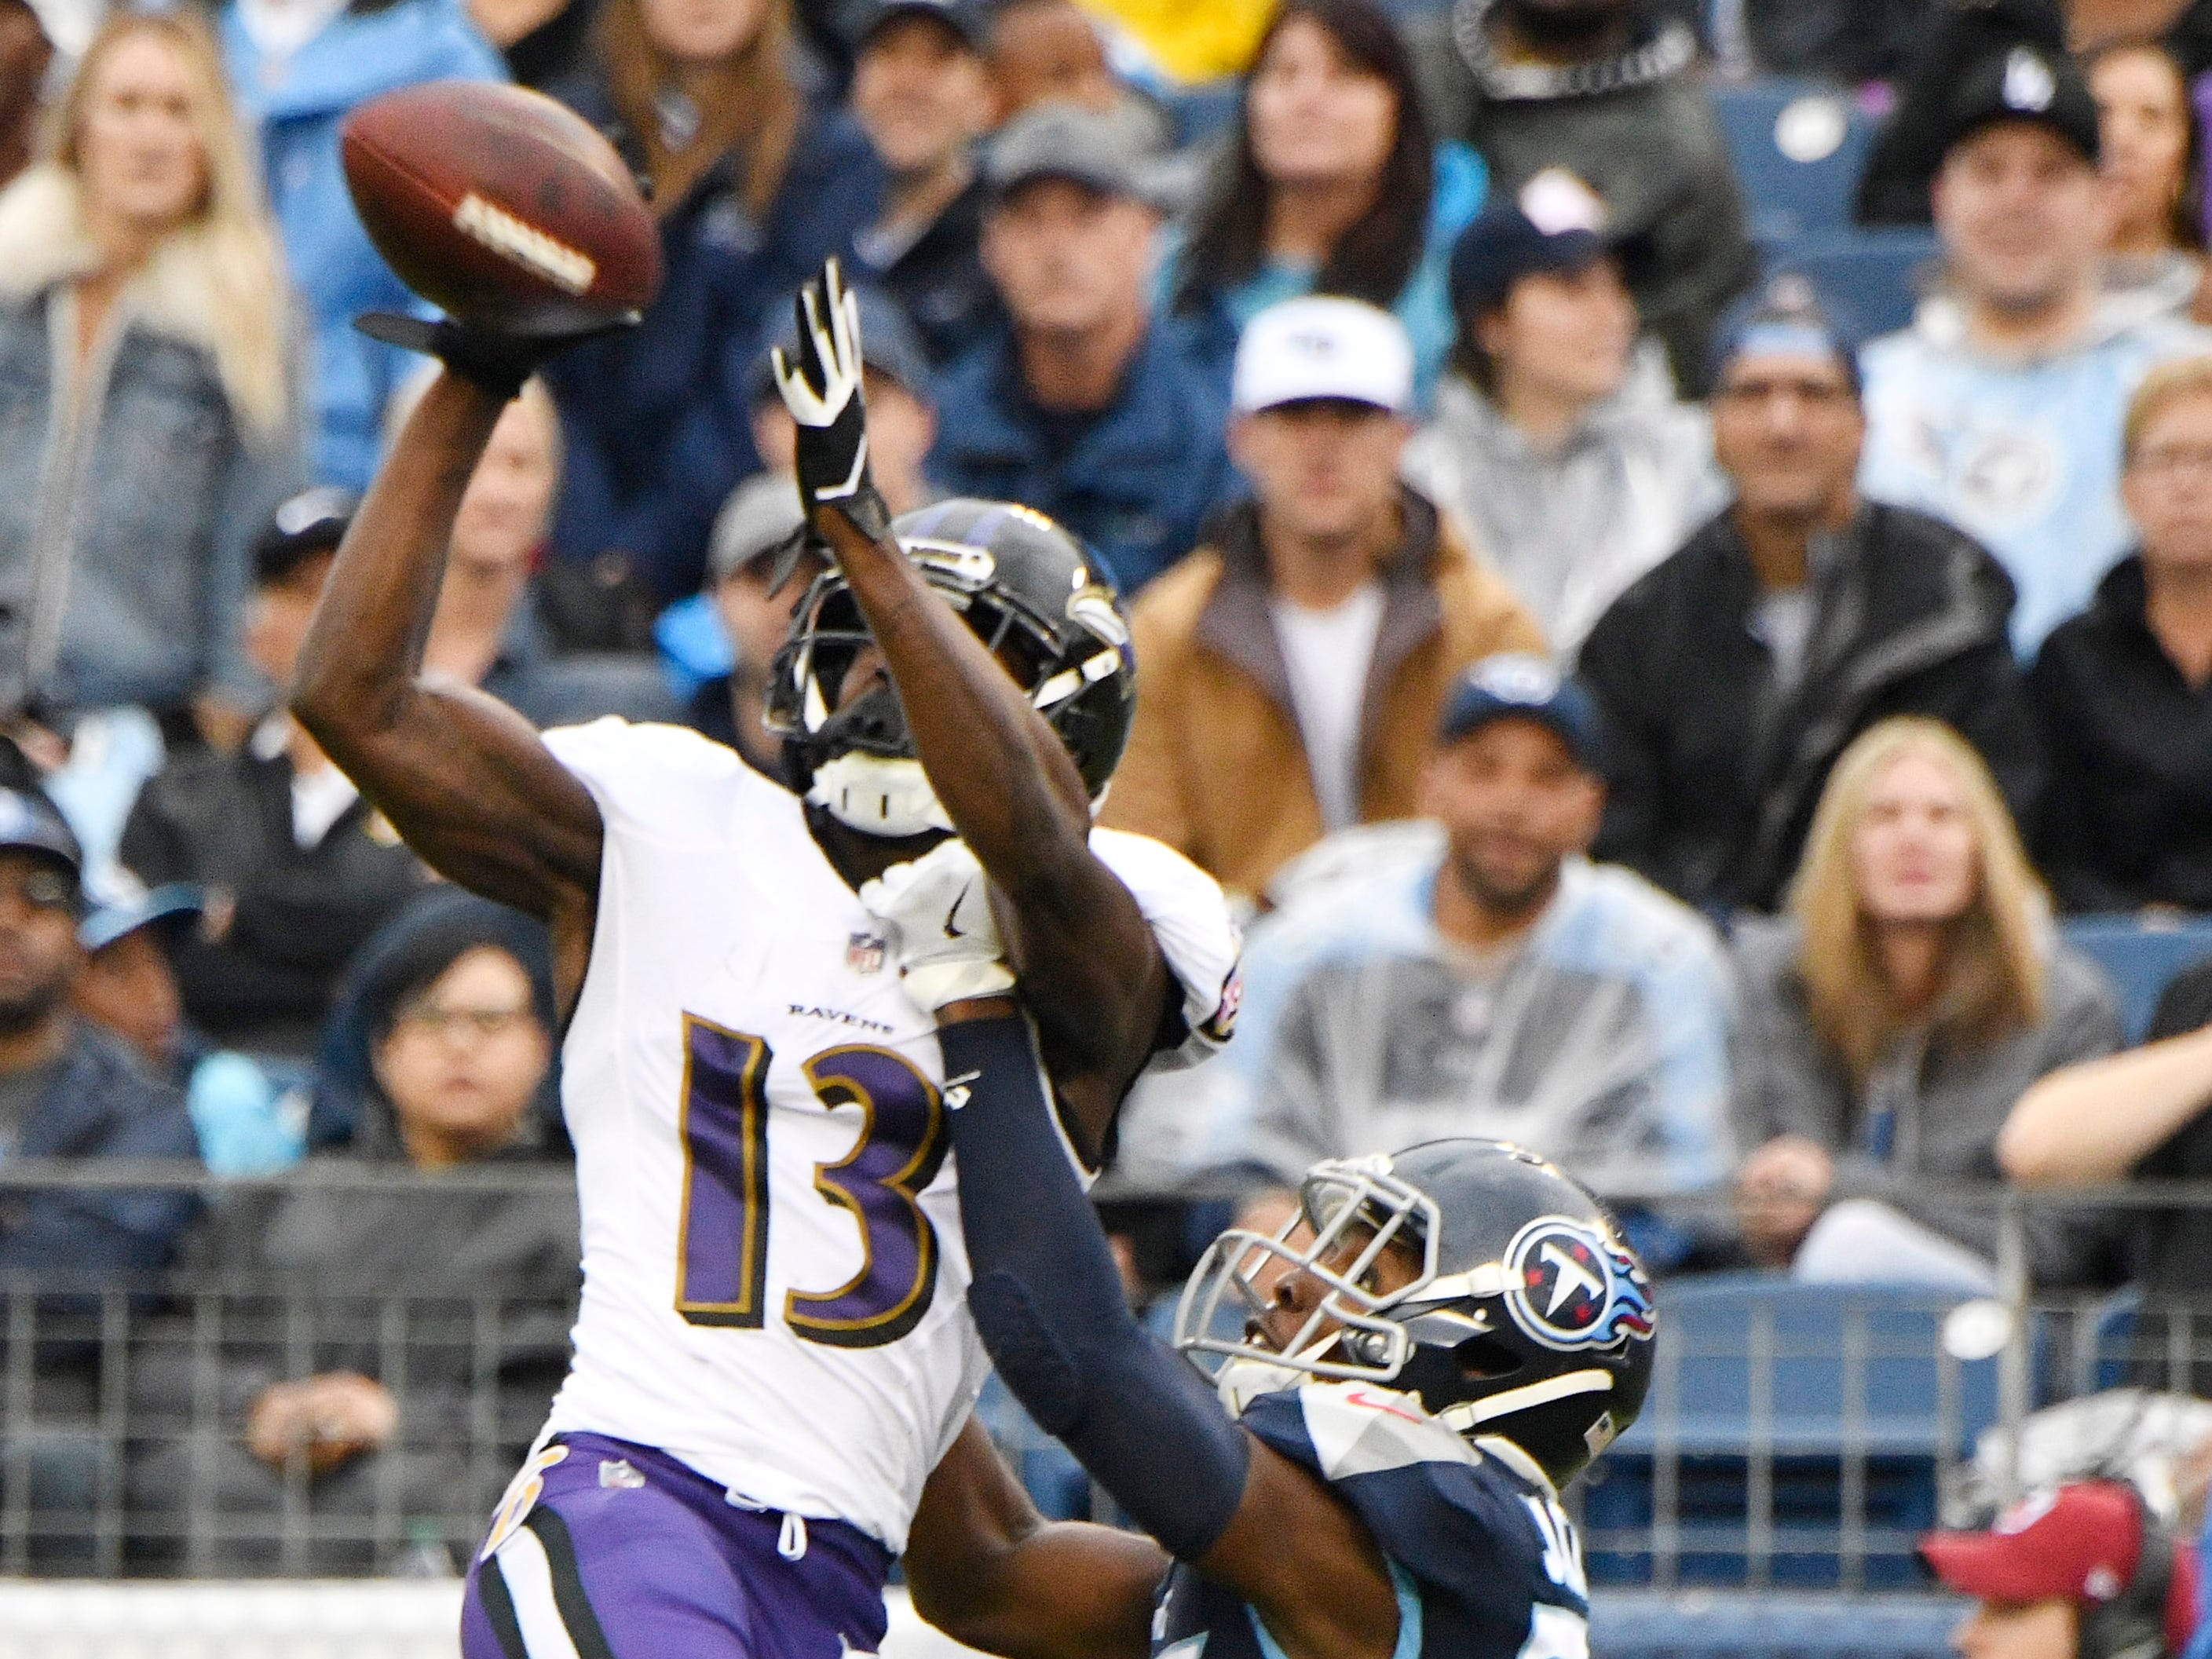 Ravens wide receiver John Brown (13) makes a catch over Titans cornerback Adoree' Jackson (25) in the second quarter at Nissan Stadium Sunday, Oct. 14, 2018, in Nashville, Tenn.